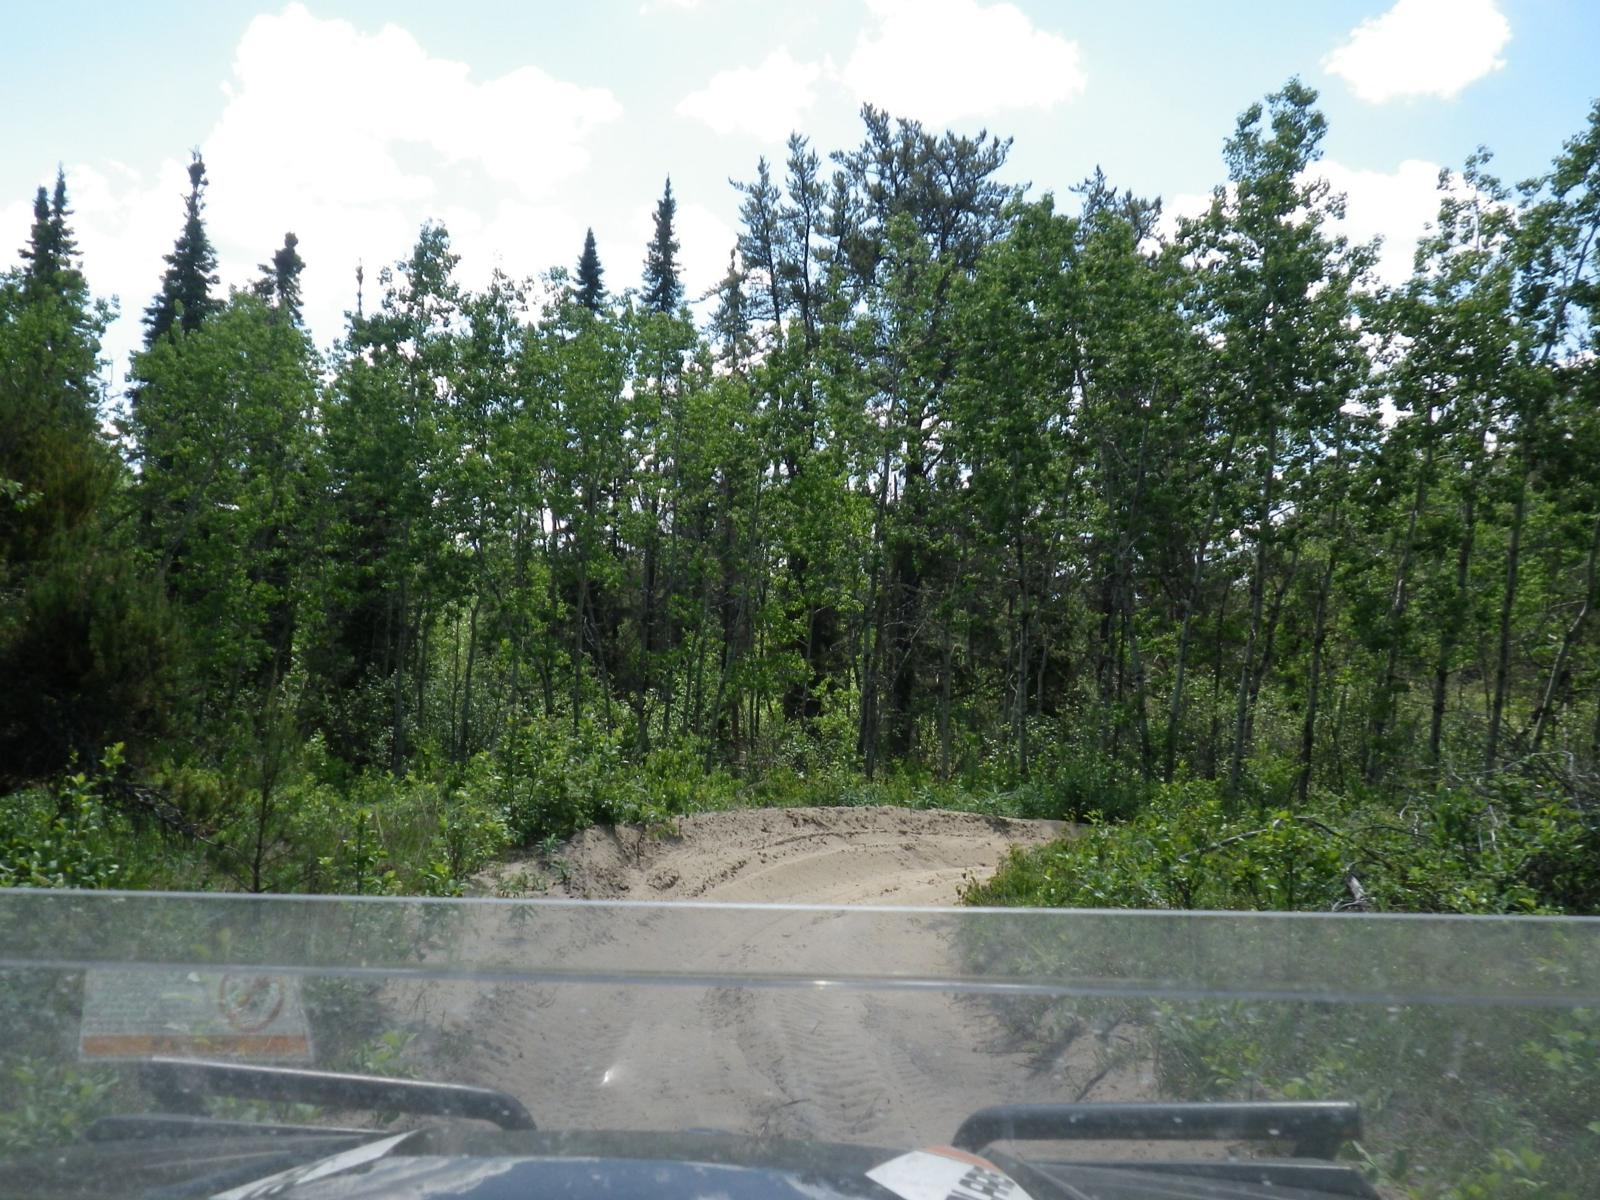 Photo of Redwater Natural Area: 15 JUN 2014 12:43